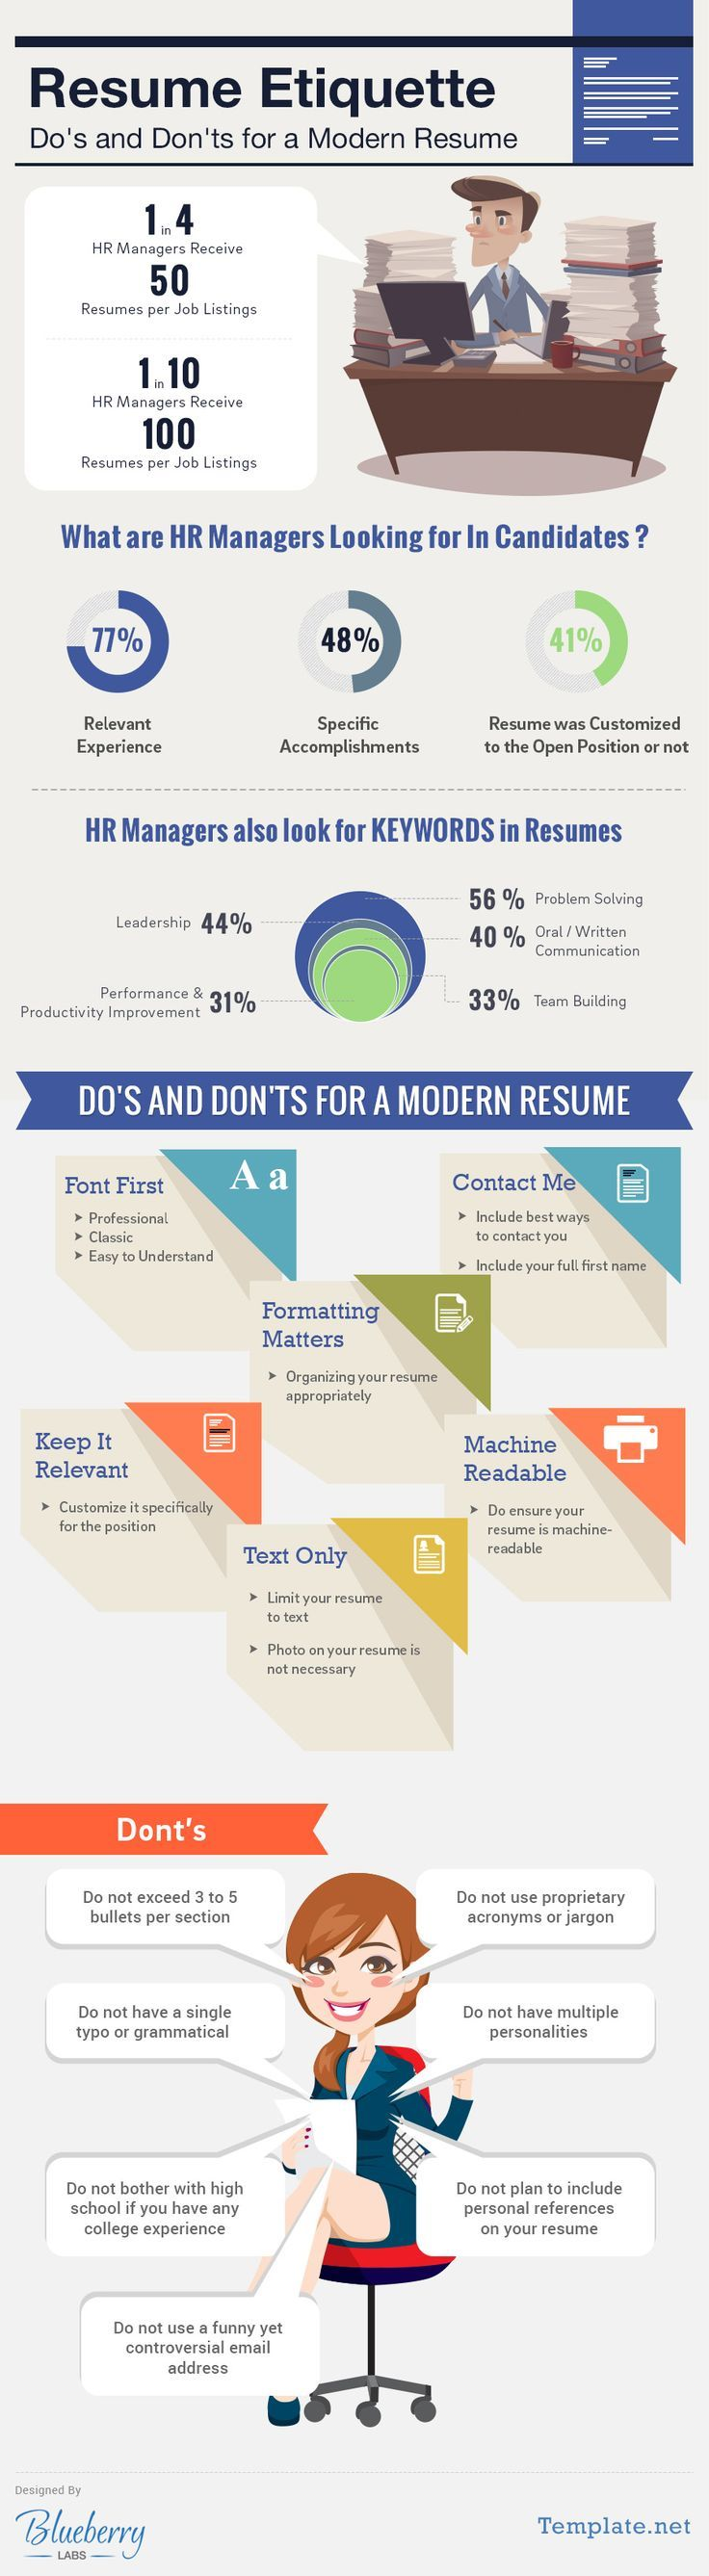 Resume For A Teacher Pdf  Best Polish Your Resume Images On Pinterest  Resume Tips  Entry Level Accountant Resume Pdf with Ut Austin Resume Pdf Having A Strong Resume Is Essential When Searching For Jobs Here Are Some  Great Ms Word Resume Template Excel